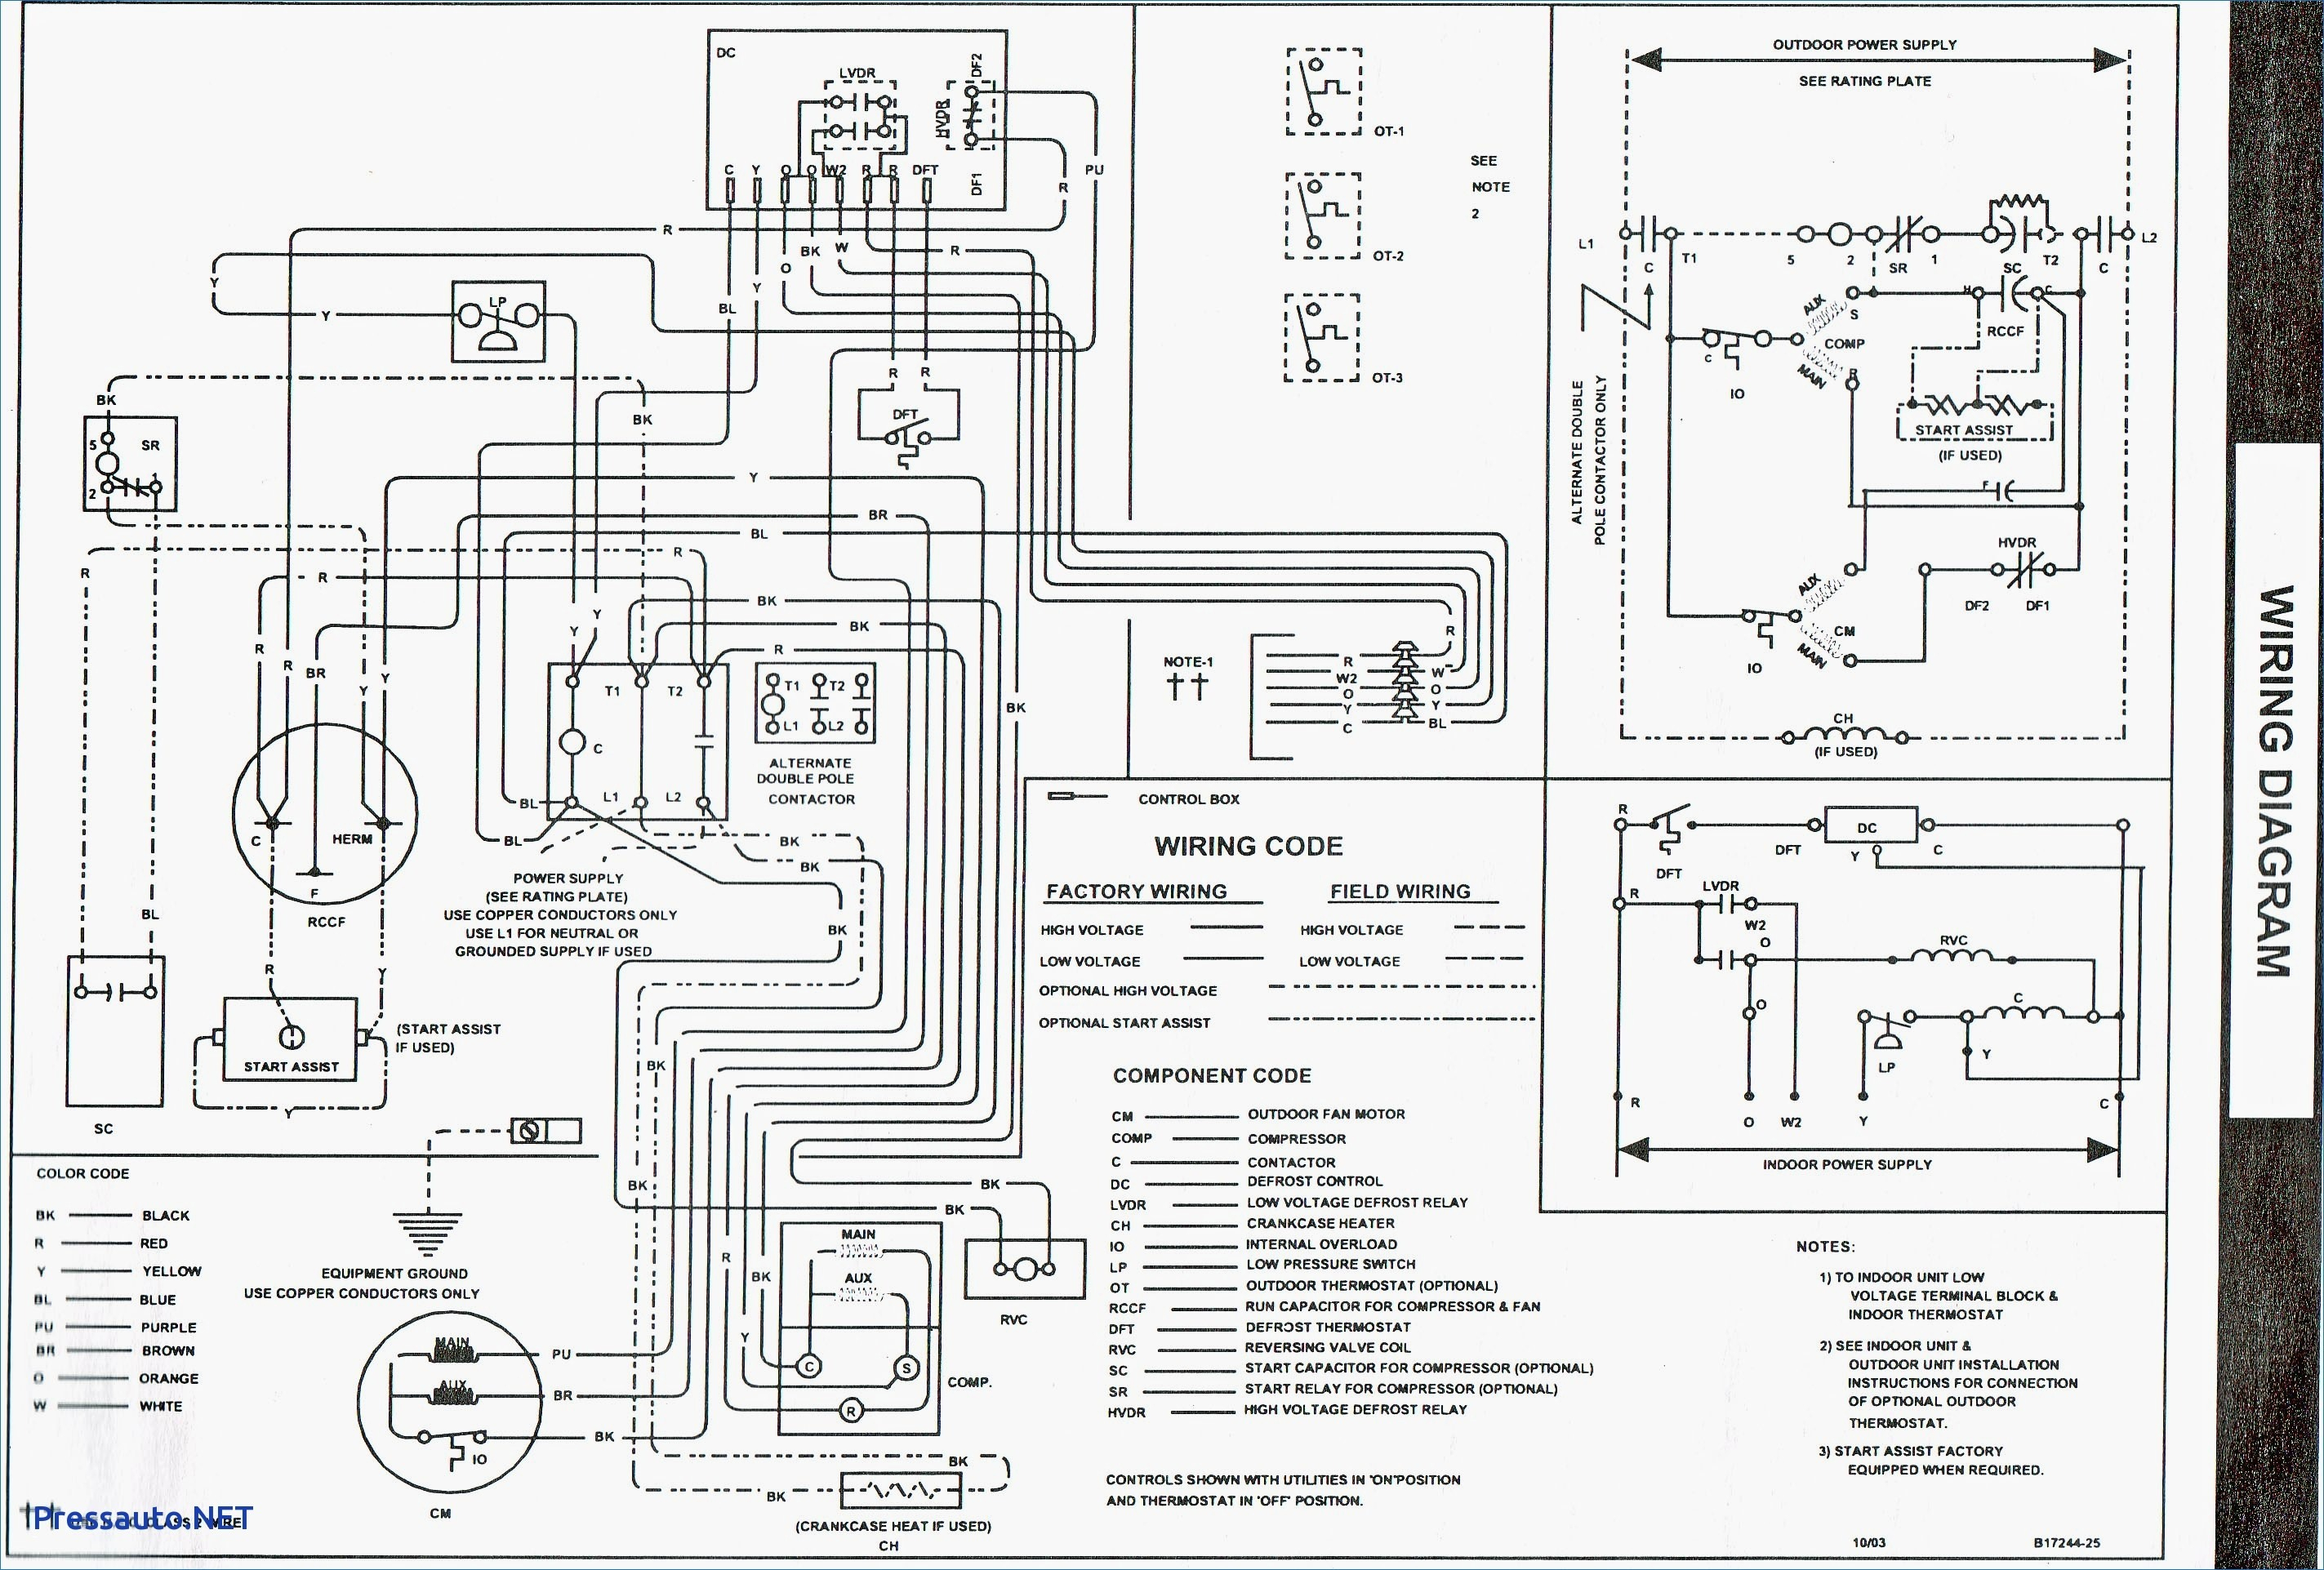 wiring diagram goodman furnace